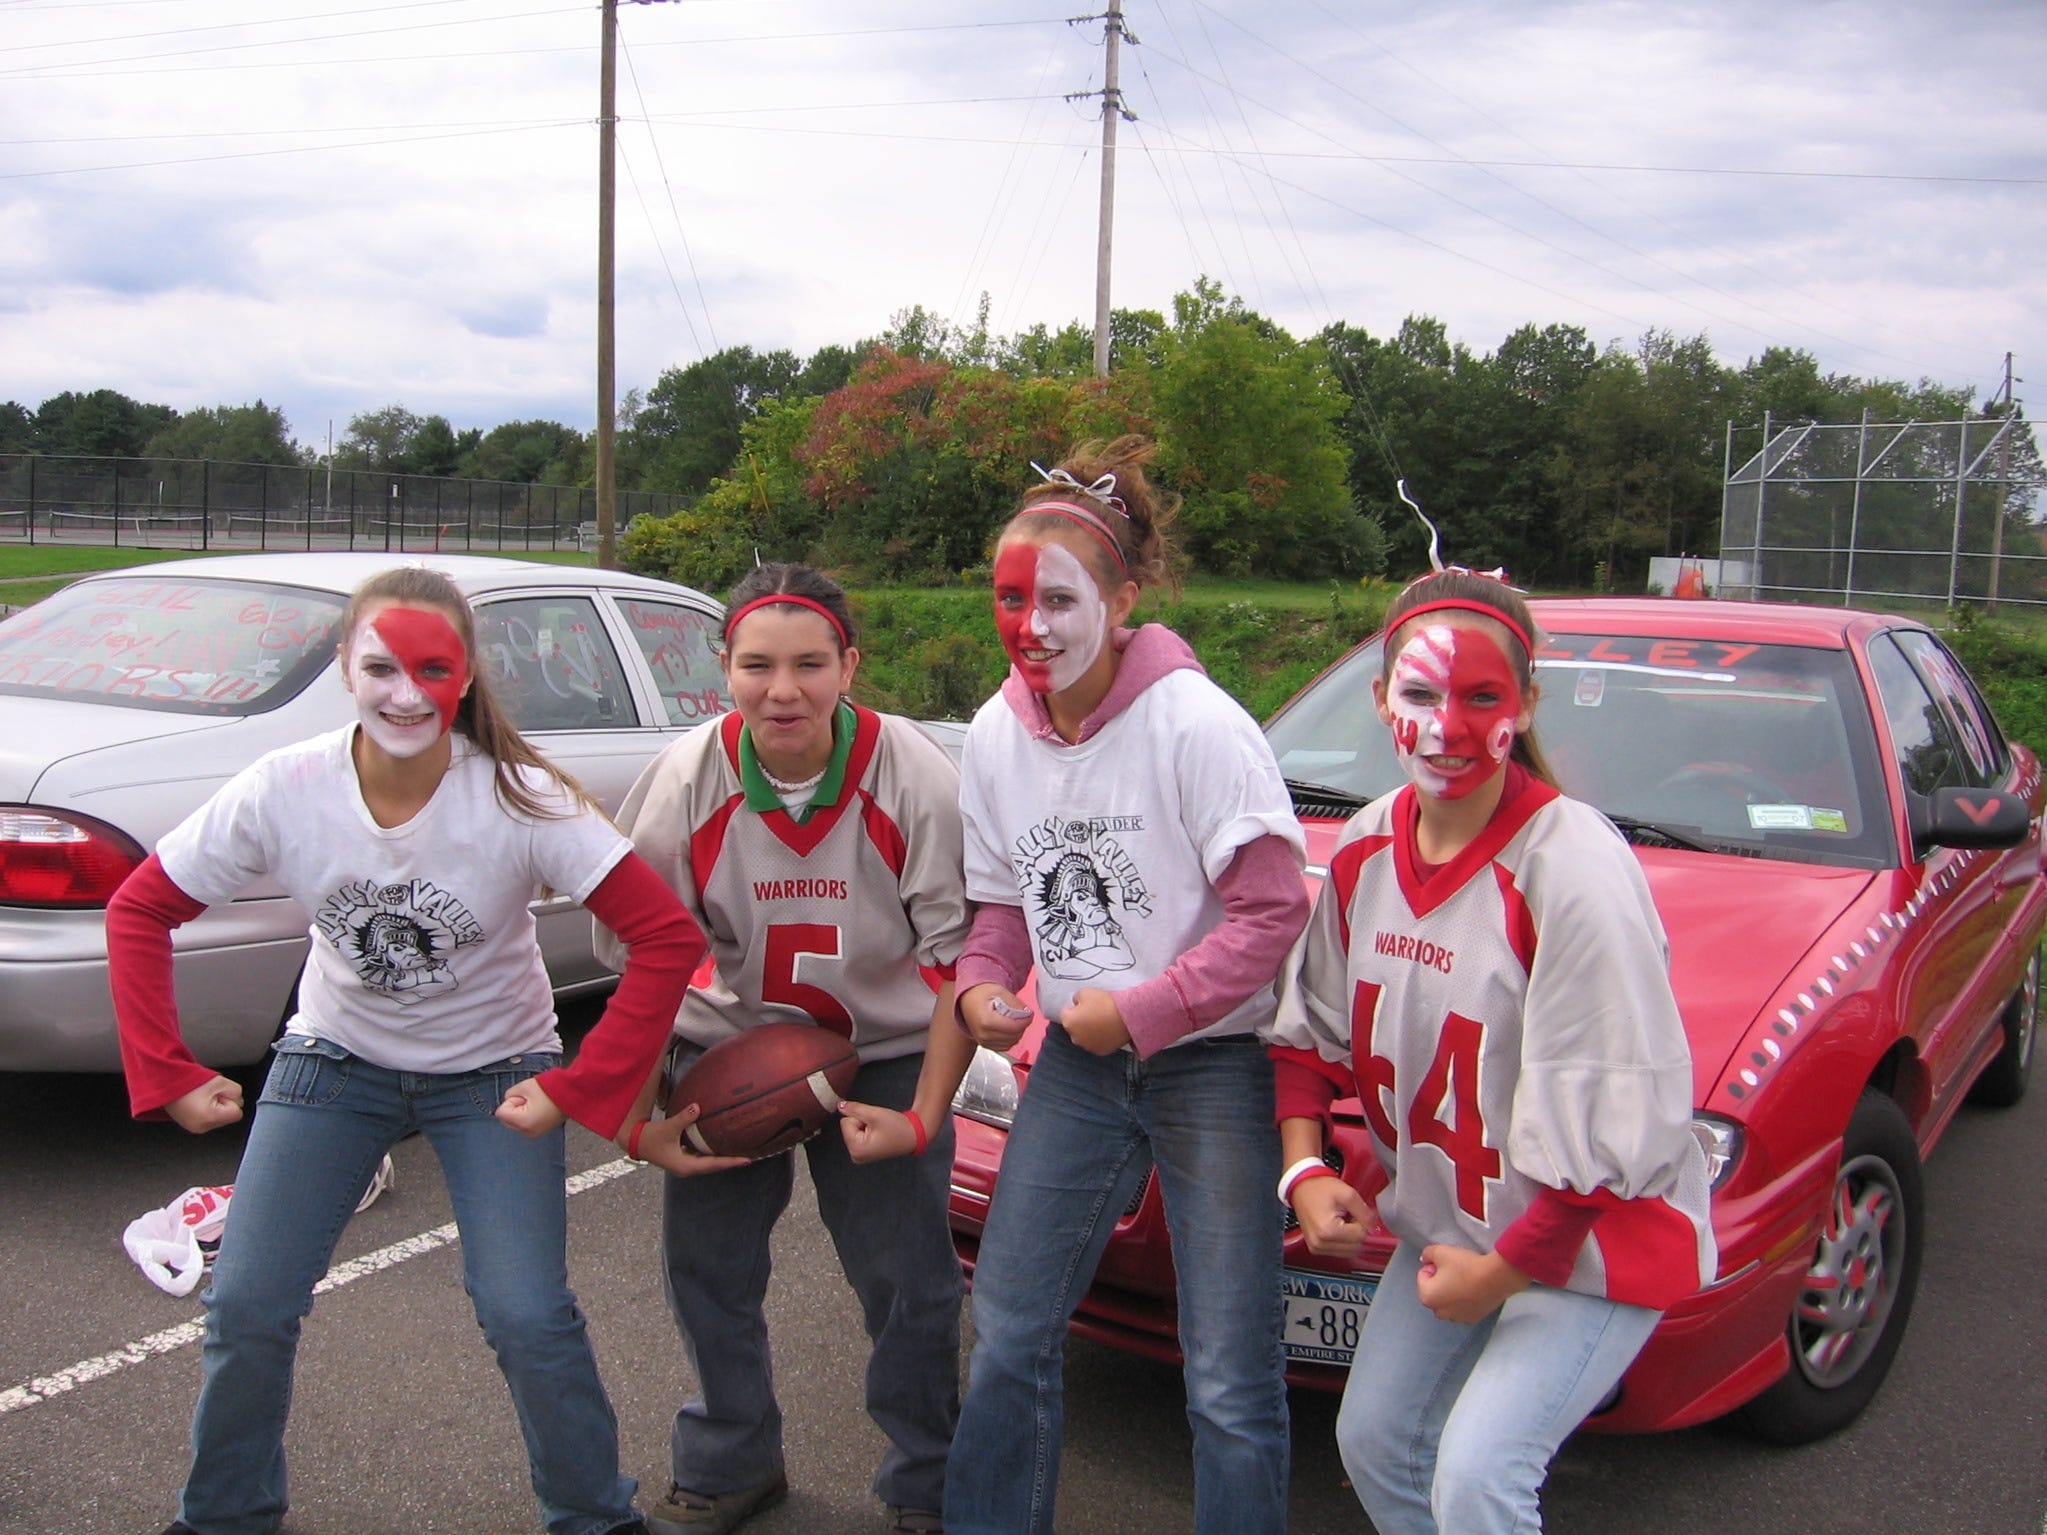 From 2018: Chenango Valley eight-graders Samantha Kline and Sanana Swan, sophomore Ashley Kline and junior Trinity Swan put on their best school spirit before the school's football game against Chenango Forks.